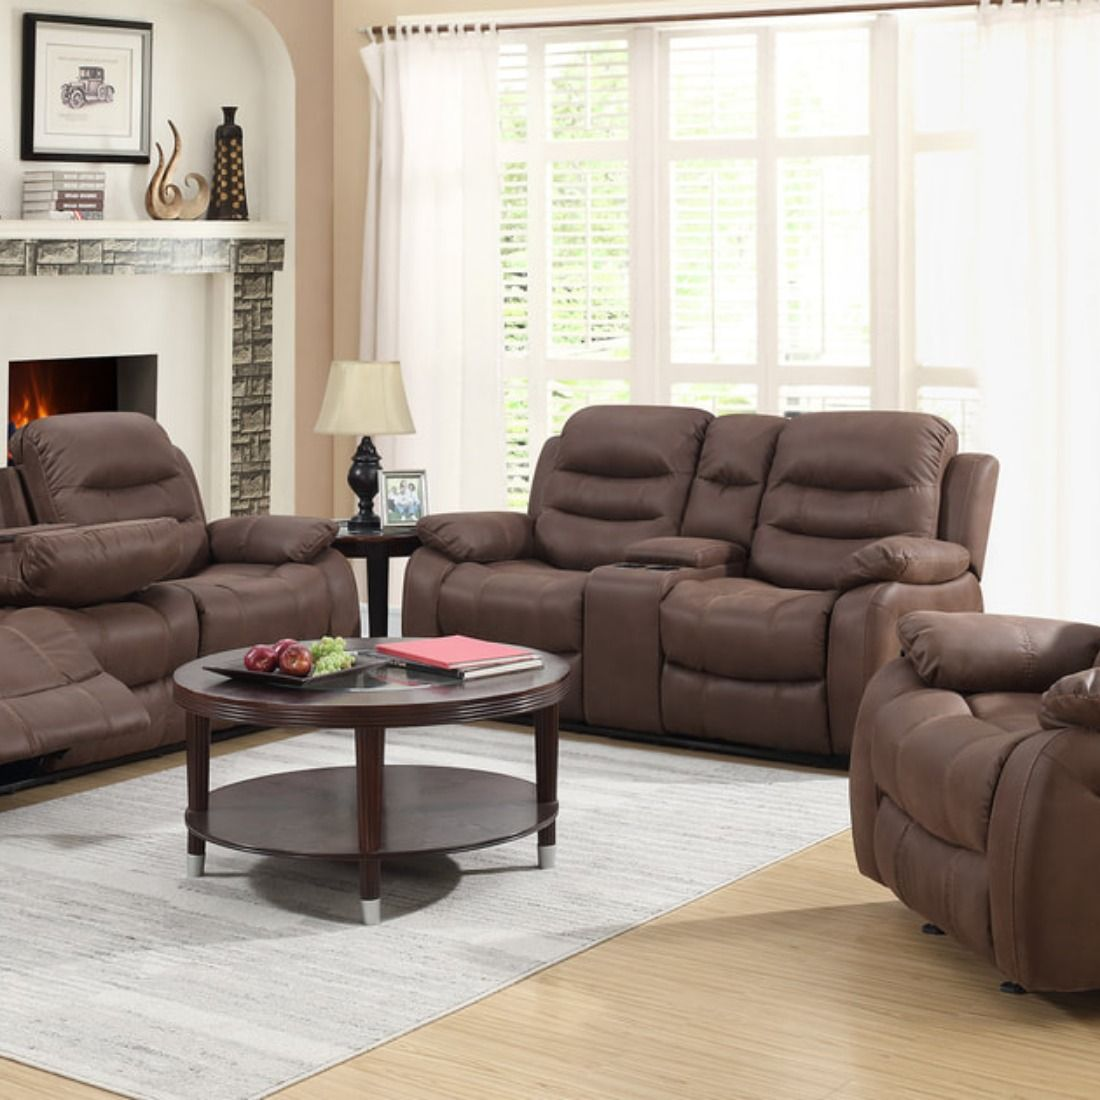 HH9265 Sofa with Drop Down Cupholders Loveseat with